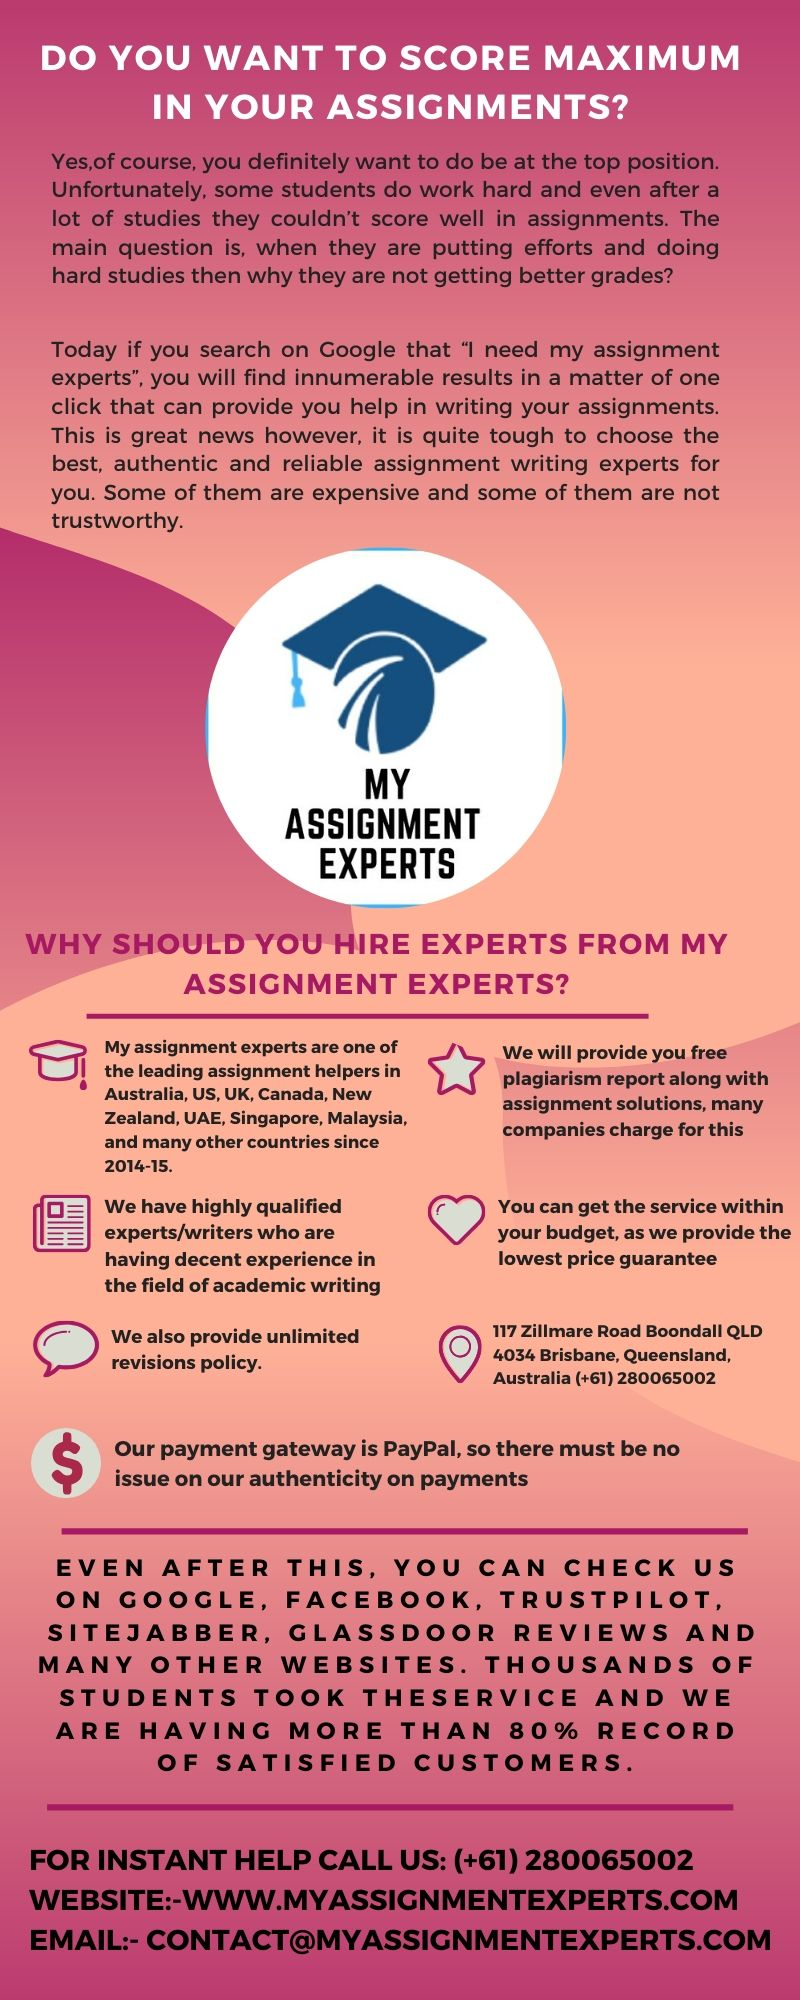 Do You Want to Score Maximum in Your Assignments?